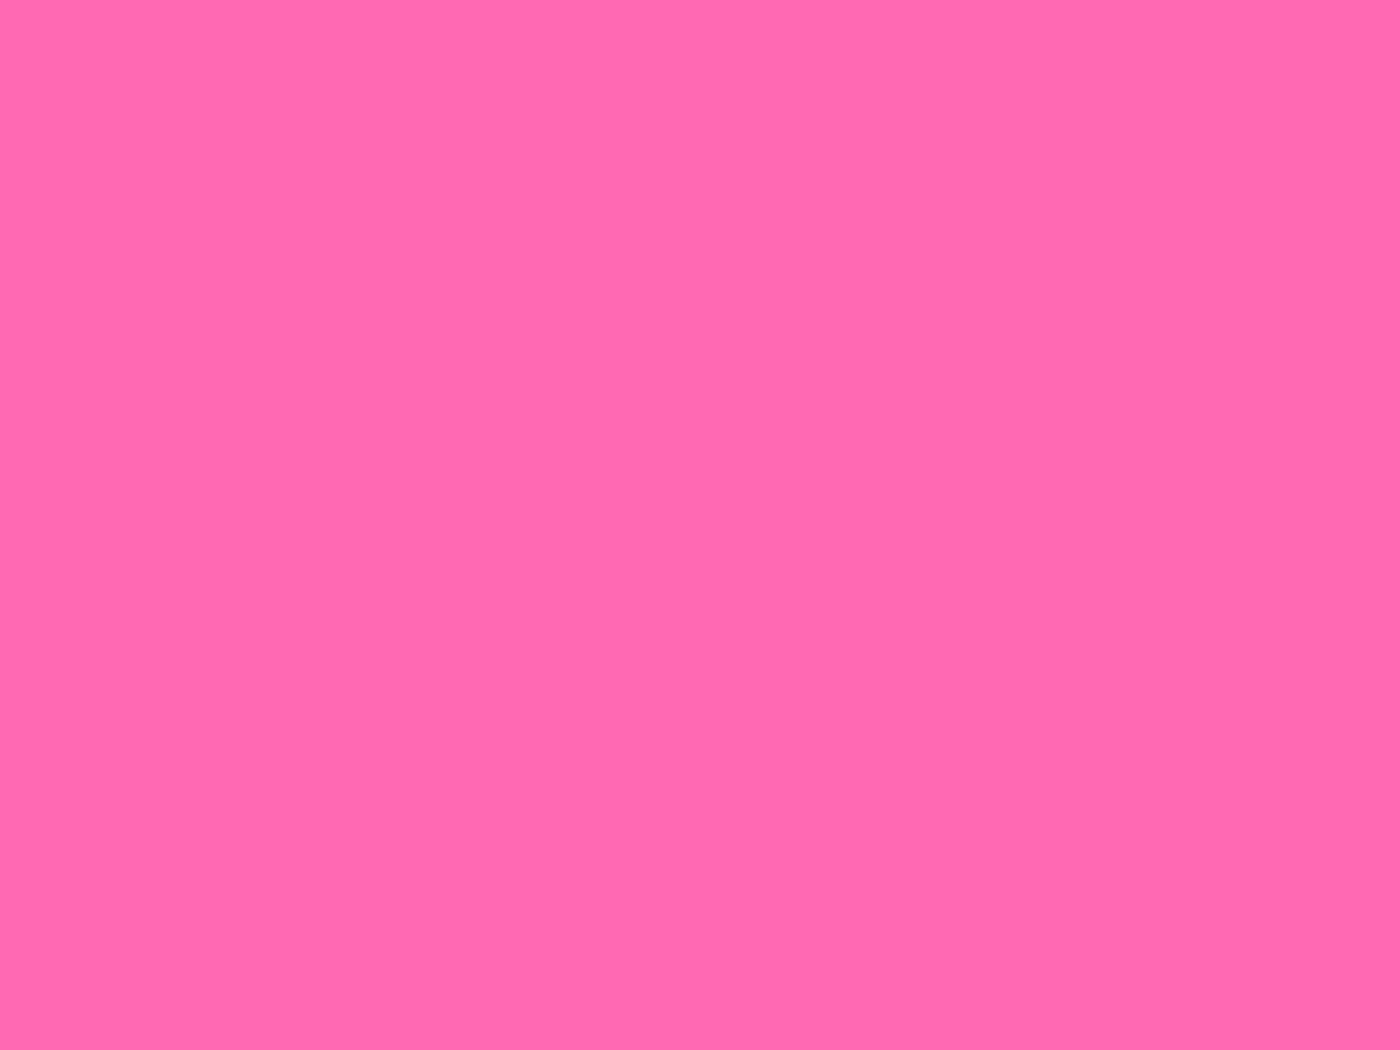 1400x1050 Hot Pink Solid Color Background